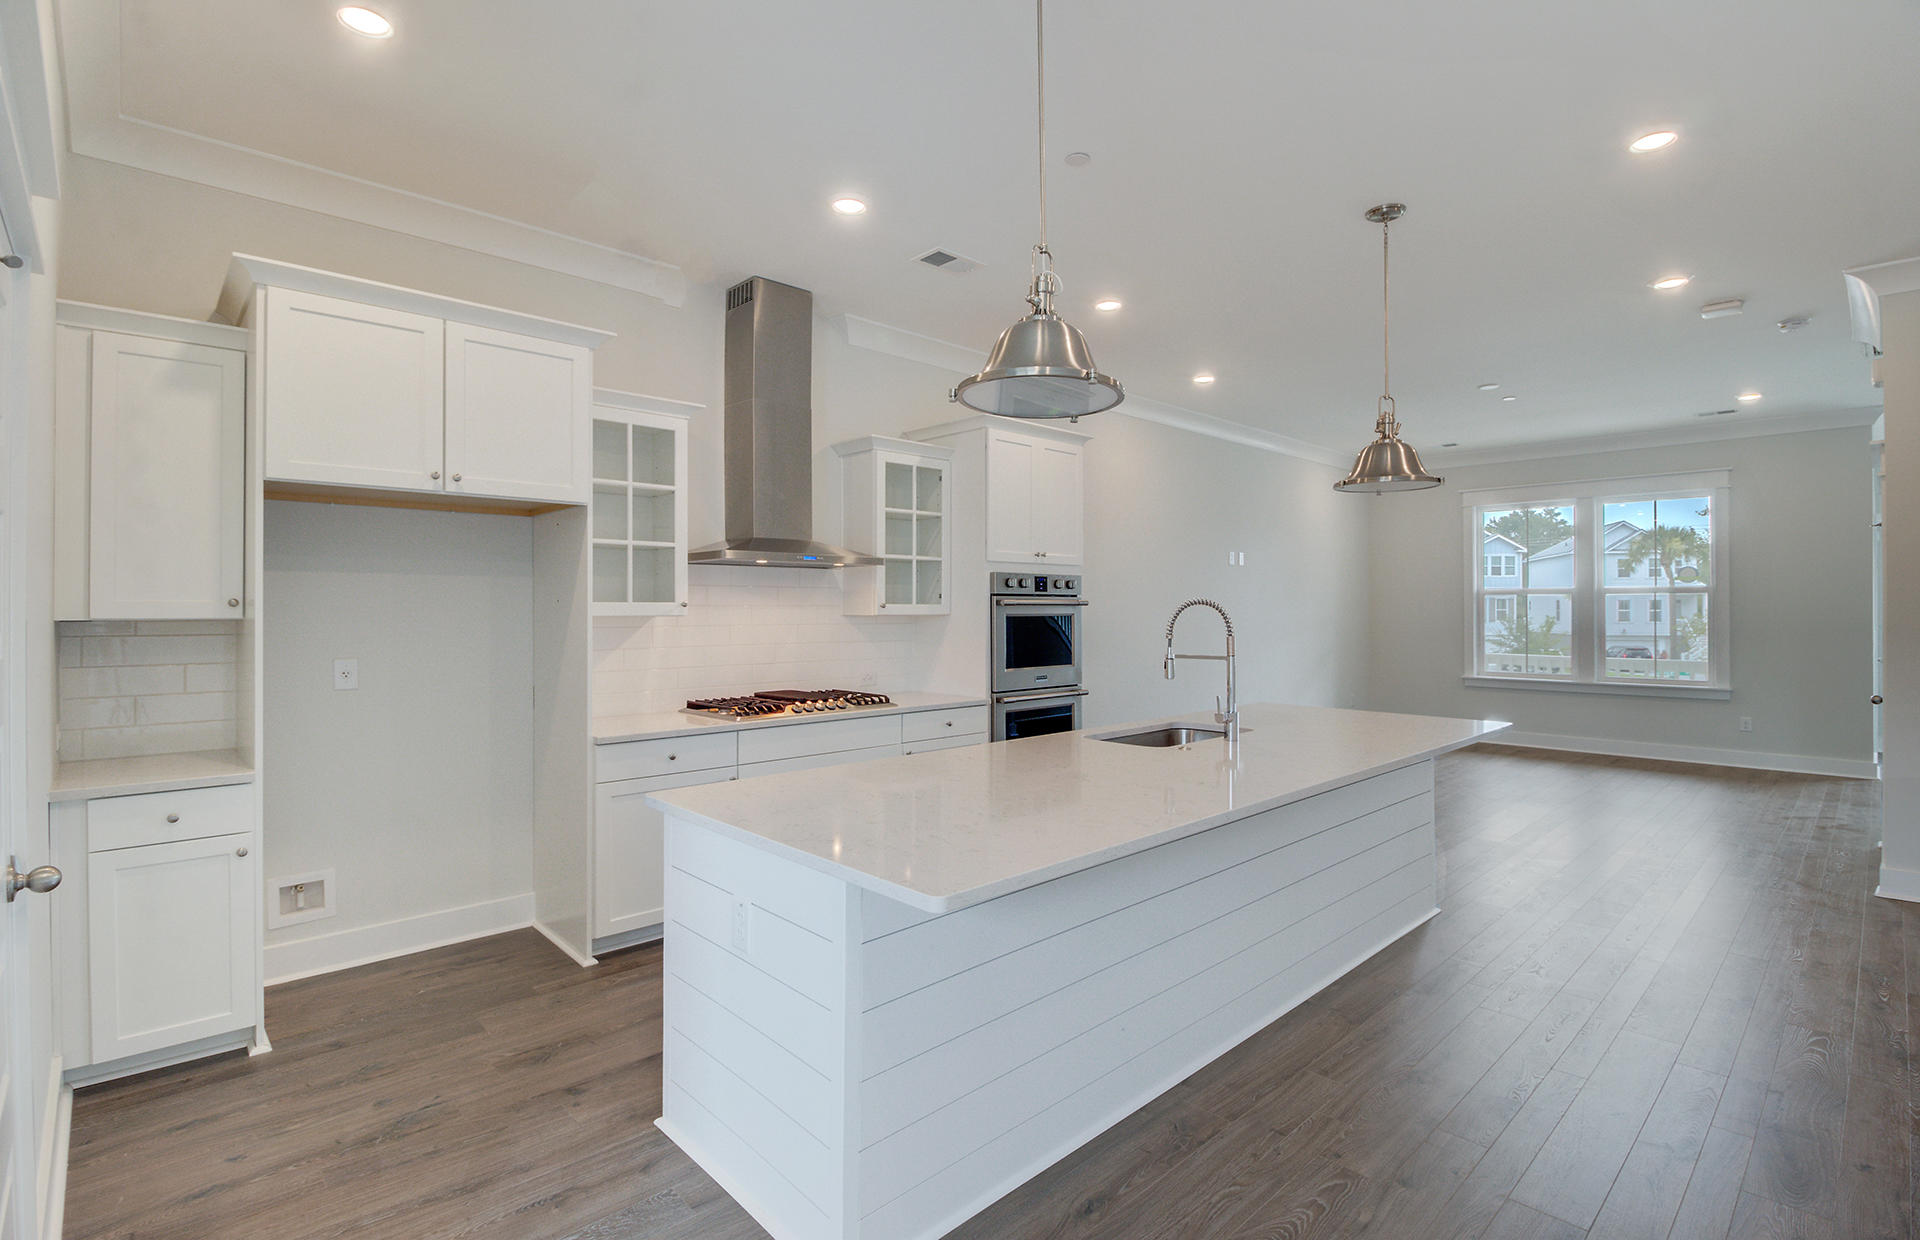 Governors Cay Homes For Sale - 804 Kings Oak, Charleston, SC - 33